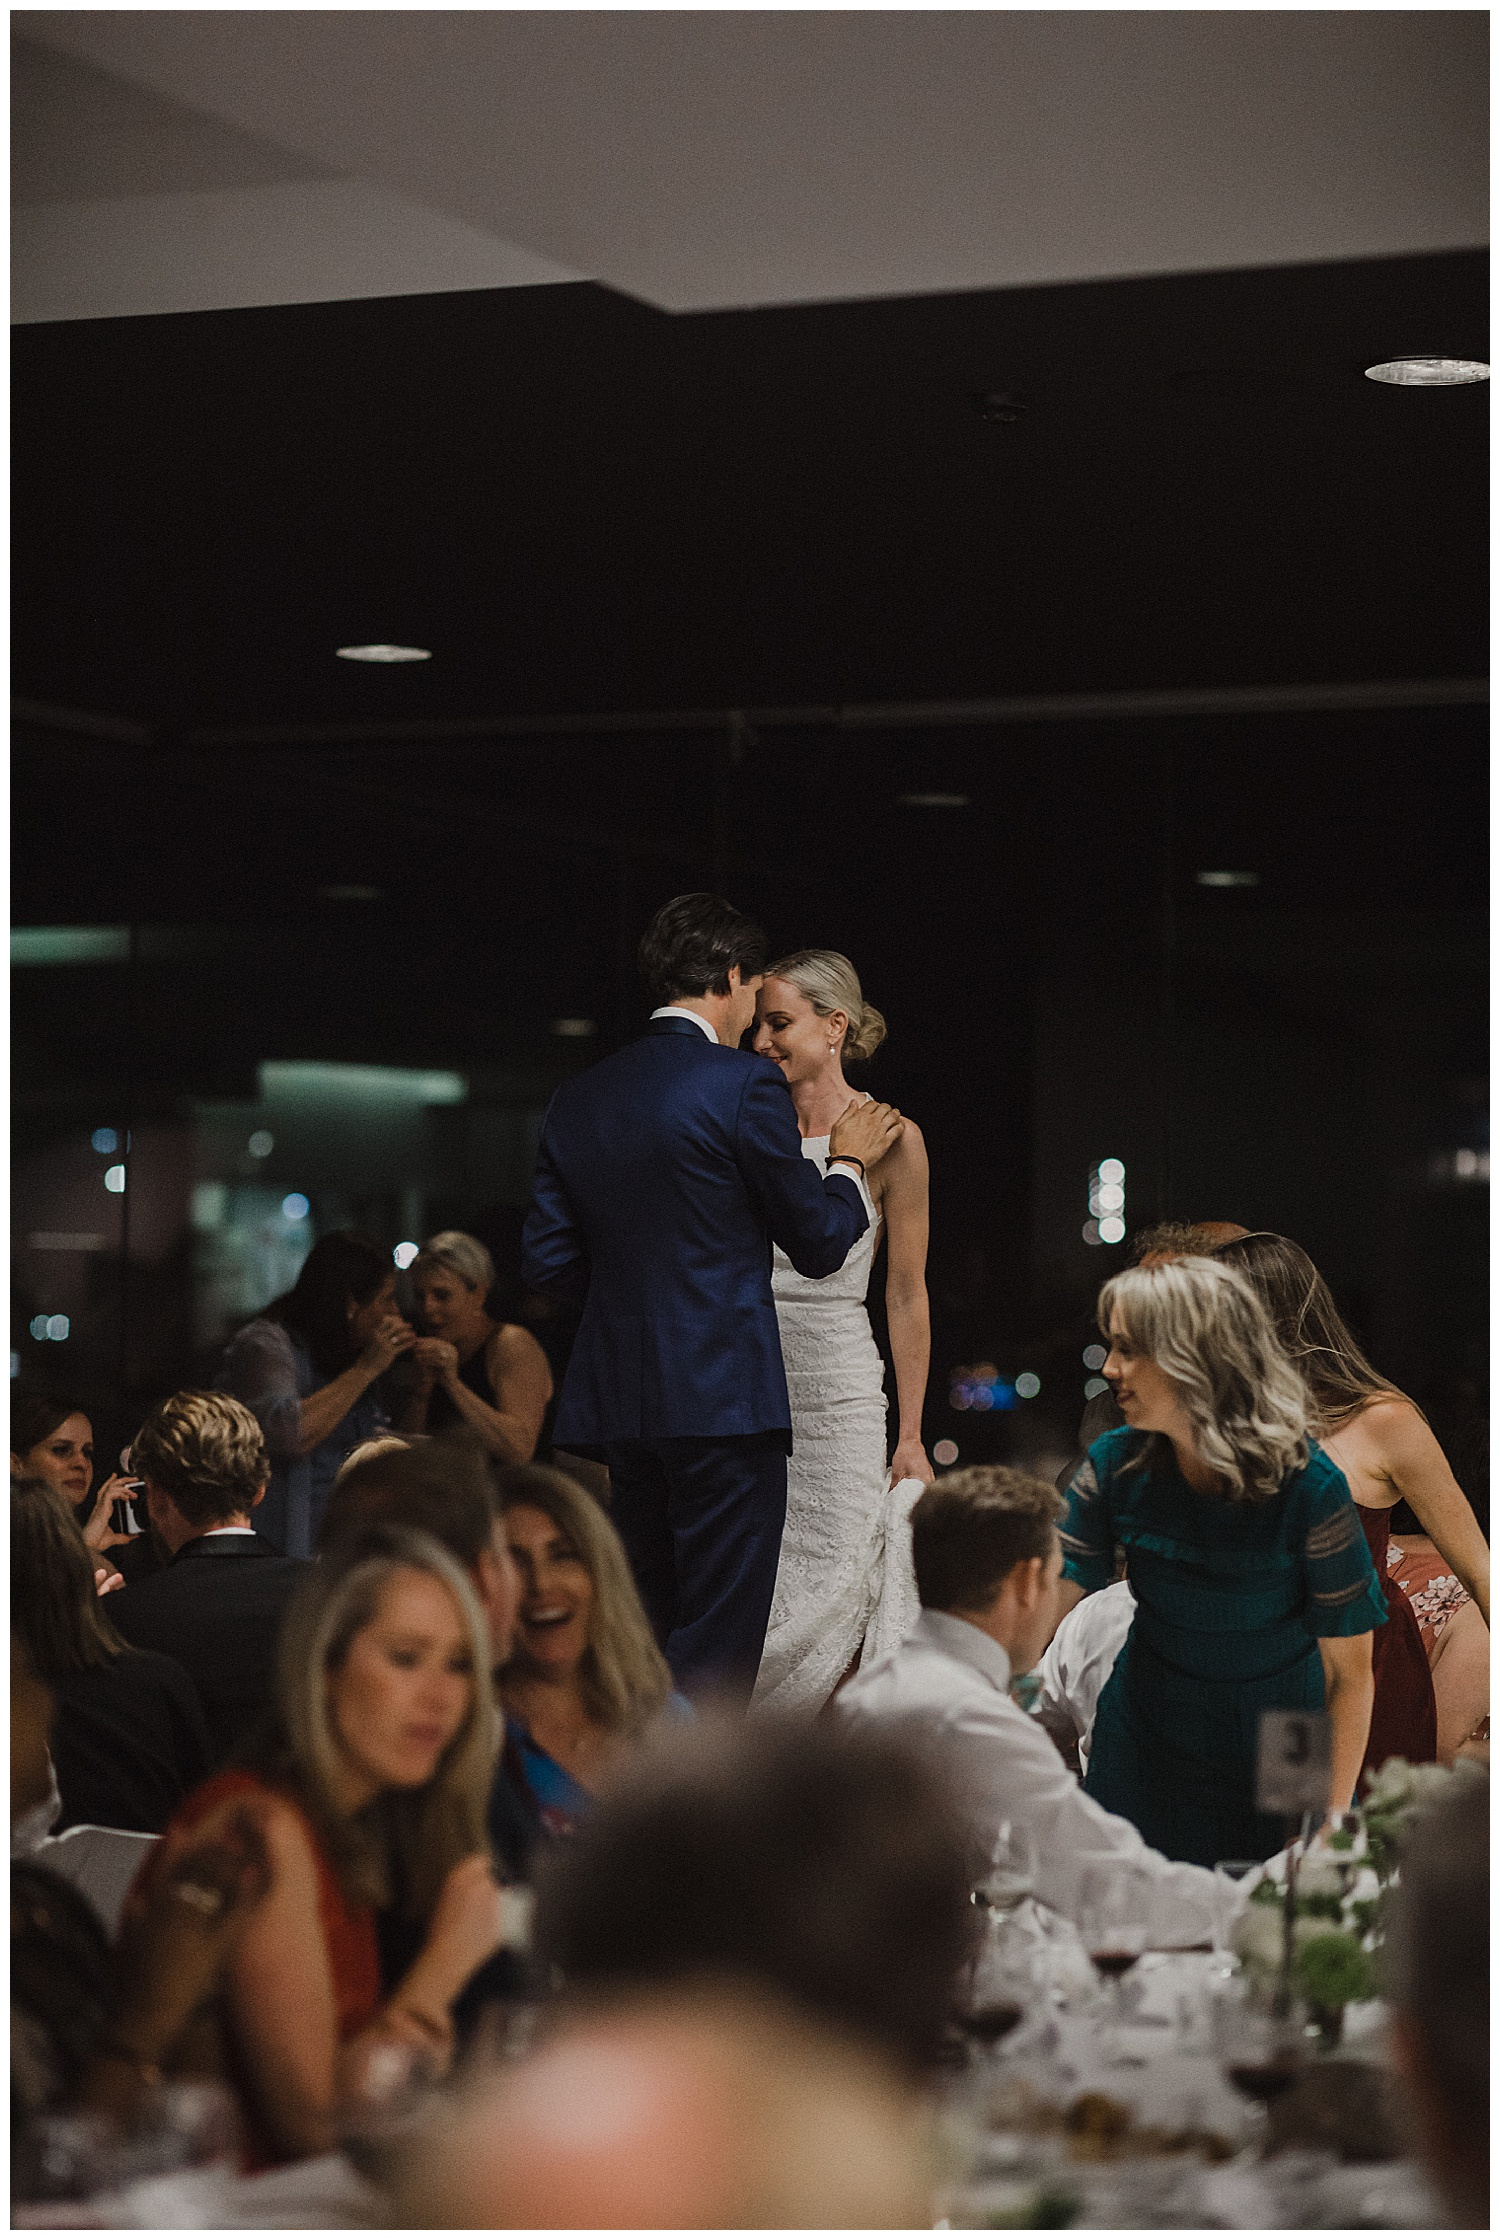 Bride and Groom share a special moment during their wedding reception at MCA Sydney.